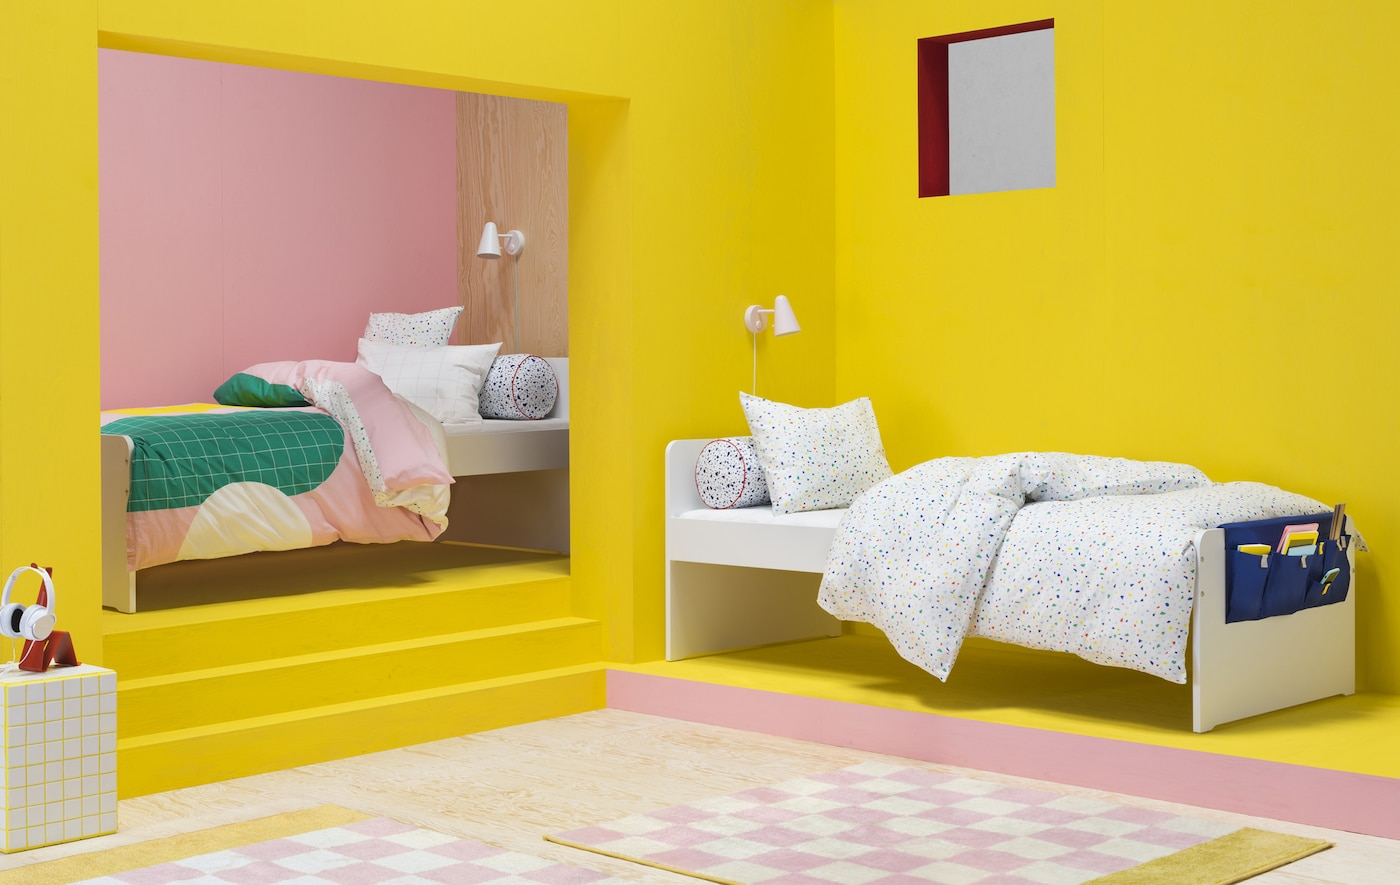 A bright pink and yellow bedroom with two single beds with colourful, graphic bedcovers.